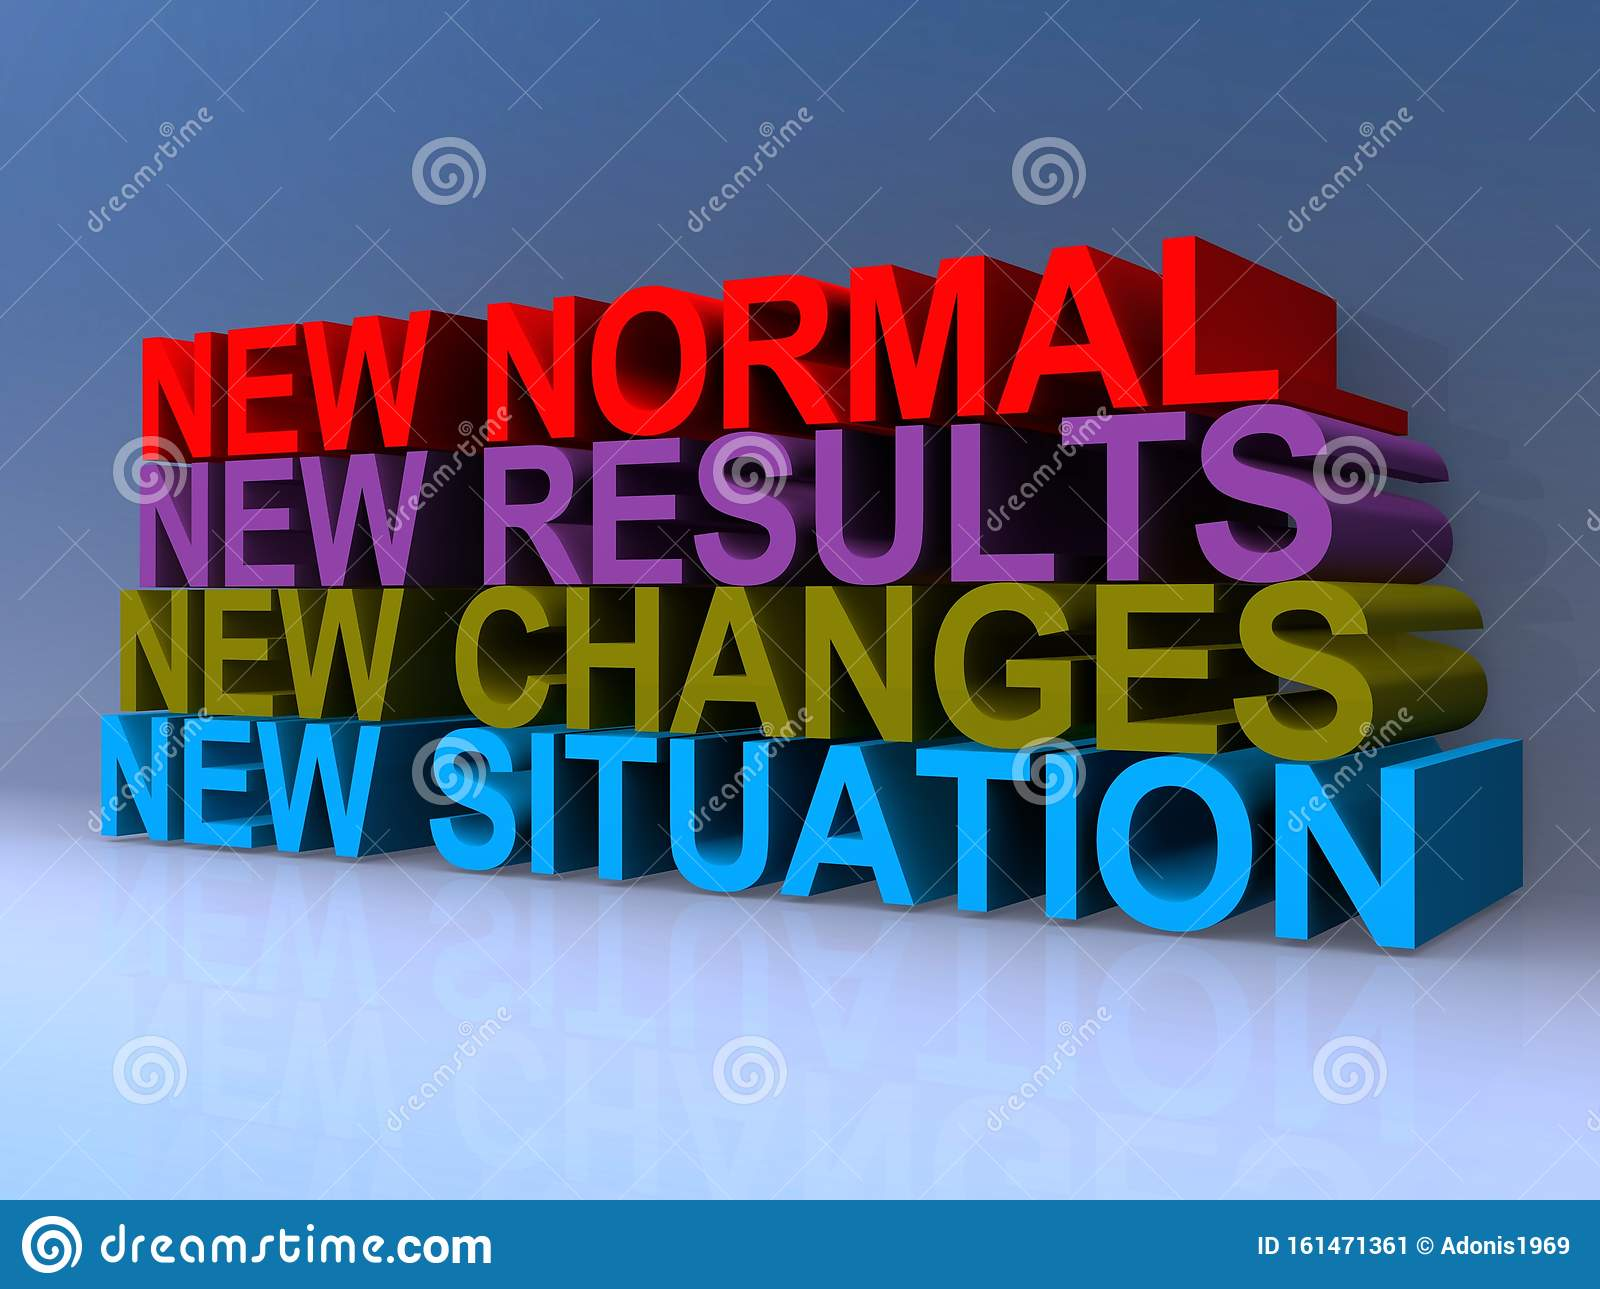 New Normal New Results New Changes New Situation Stock